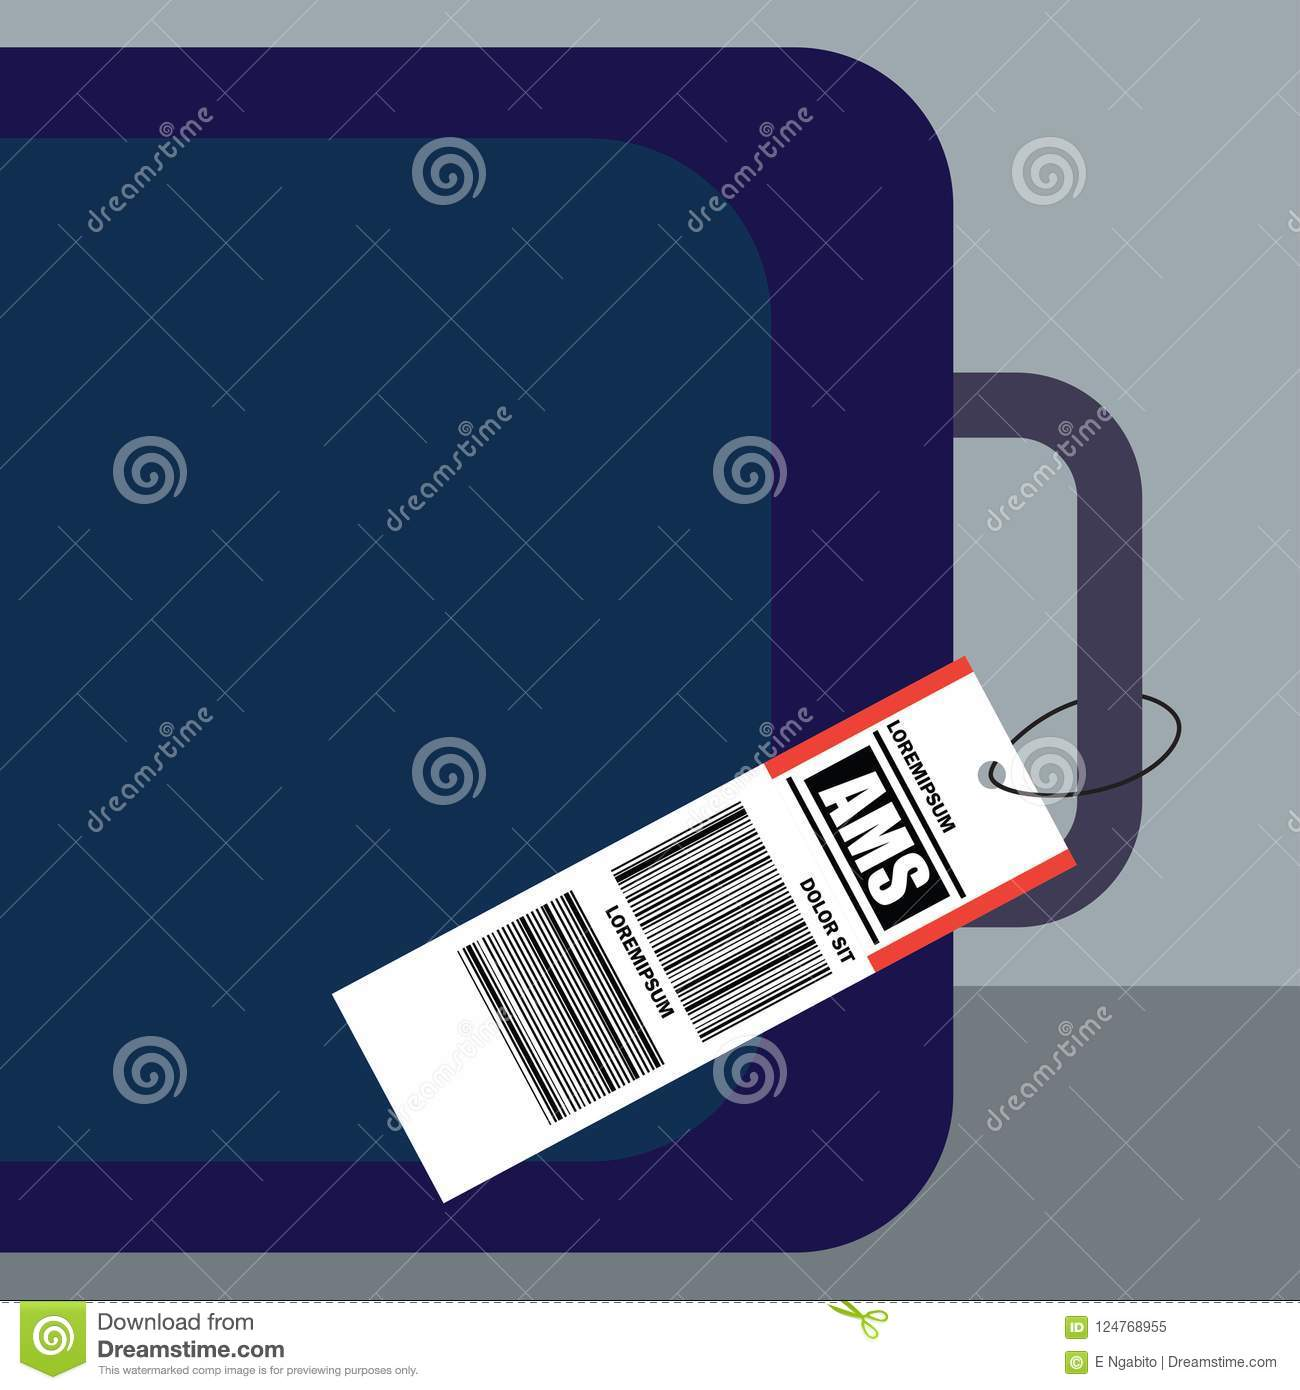 Luggage tag label on suitcase with netherlands amsterdam, country code and barcode. vector illustration